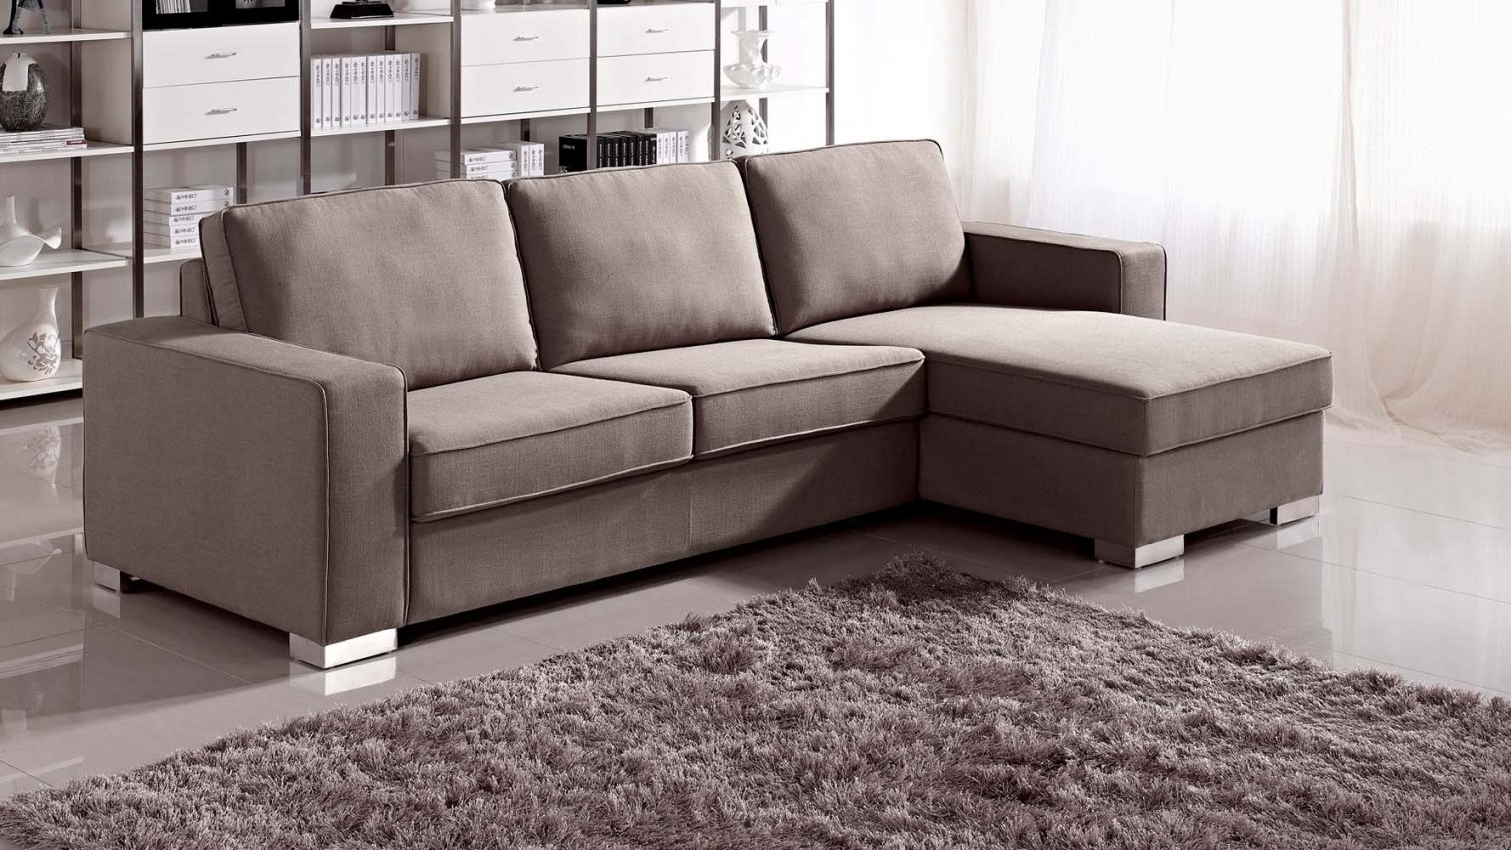 Favorite Sectional Sleeper Sofa With Chaise 29 In Sofa Design Ideas With Regard To Chaise Sectional Sleepers (View 7 of 15)